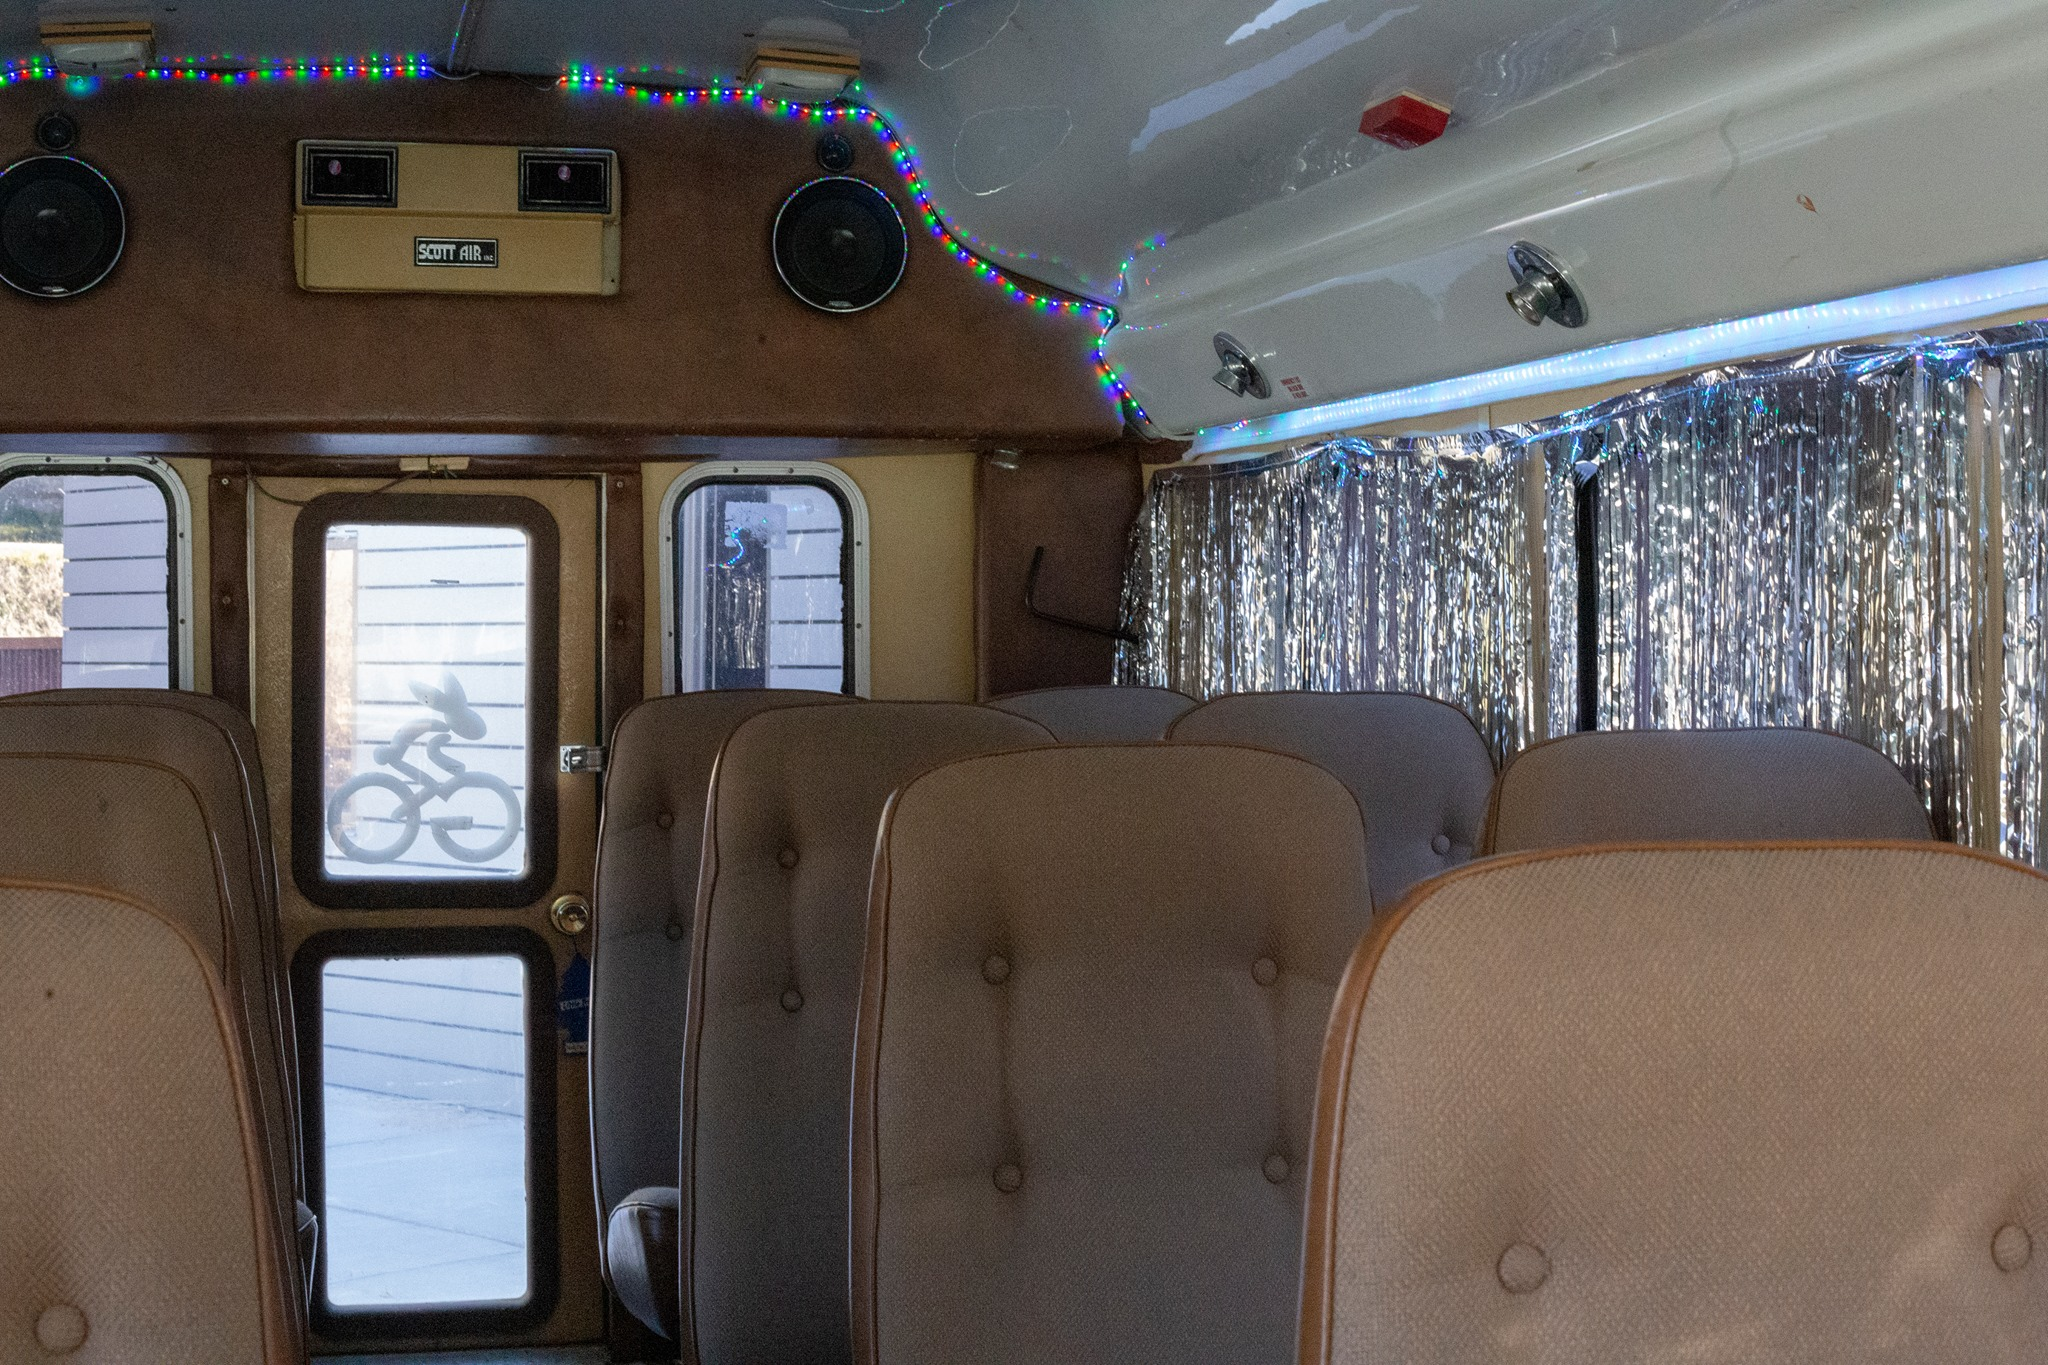 Another bus interior with blue LED lights and comfortable brown leather seating.